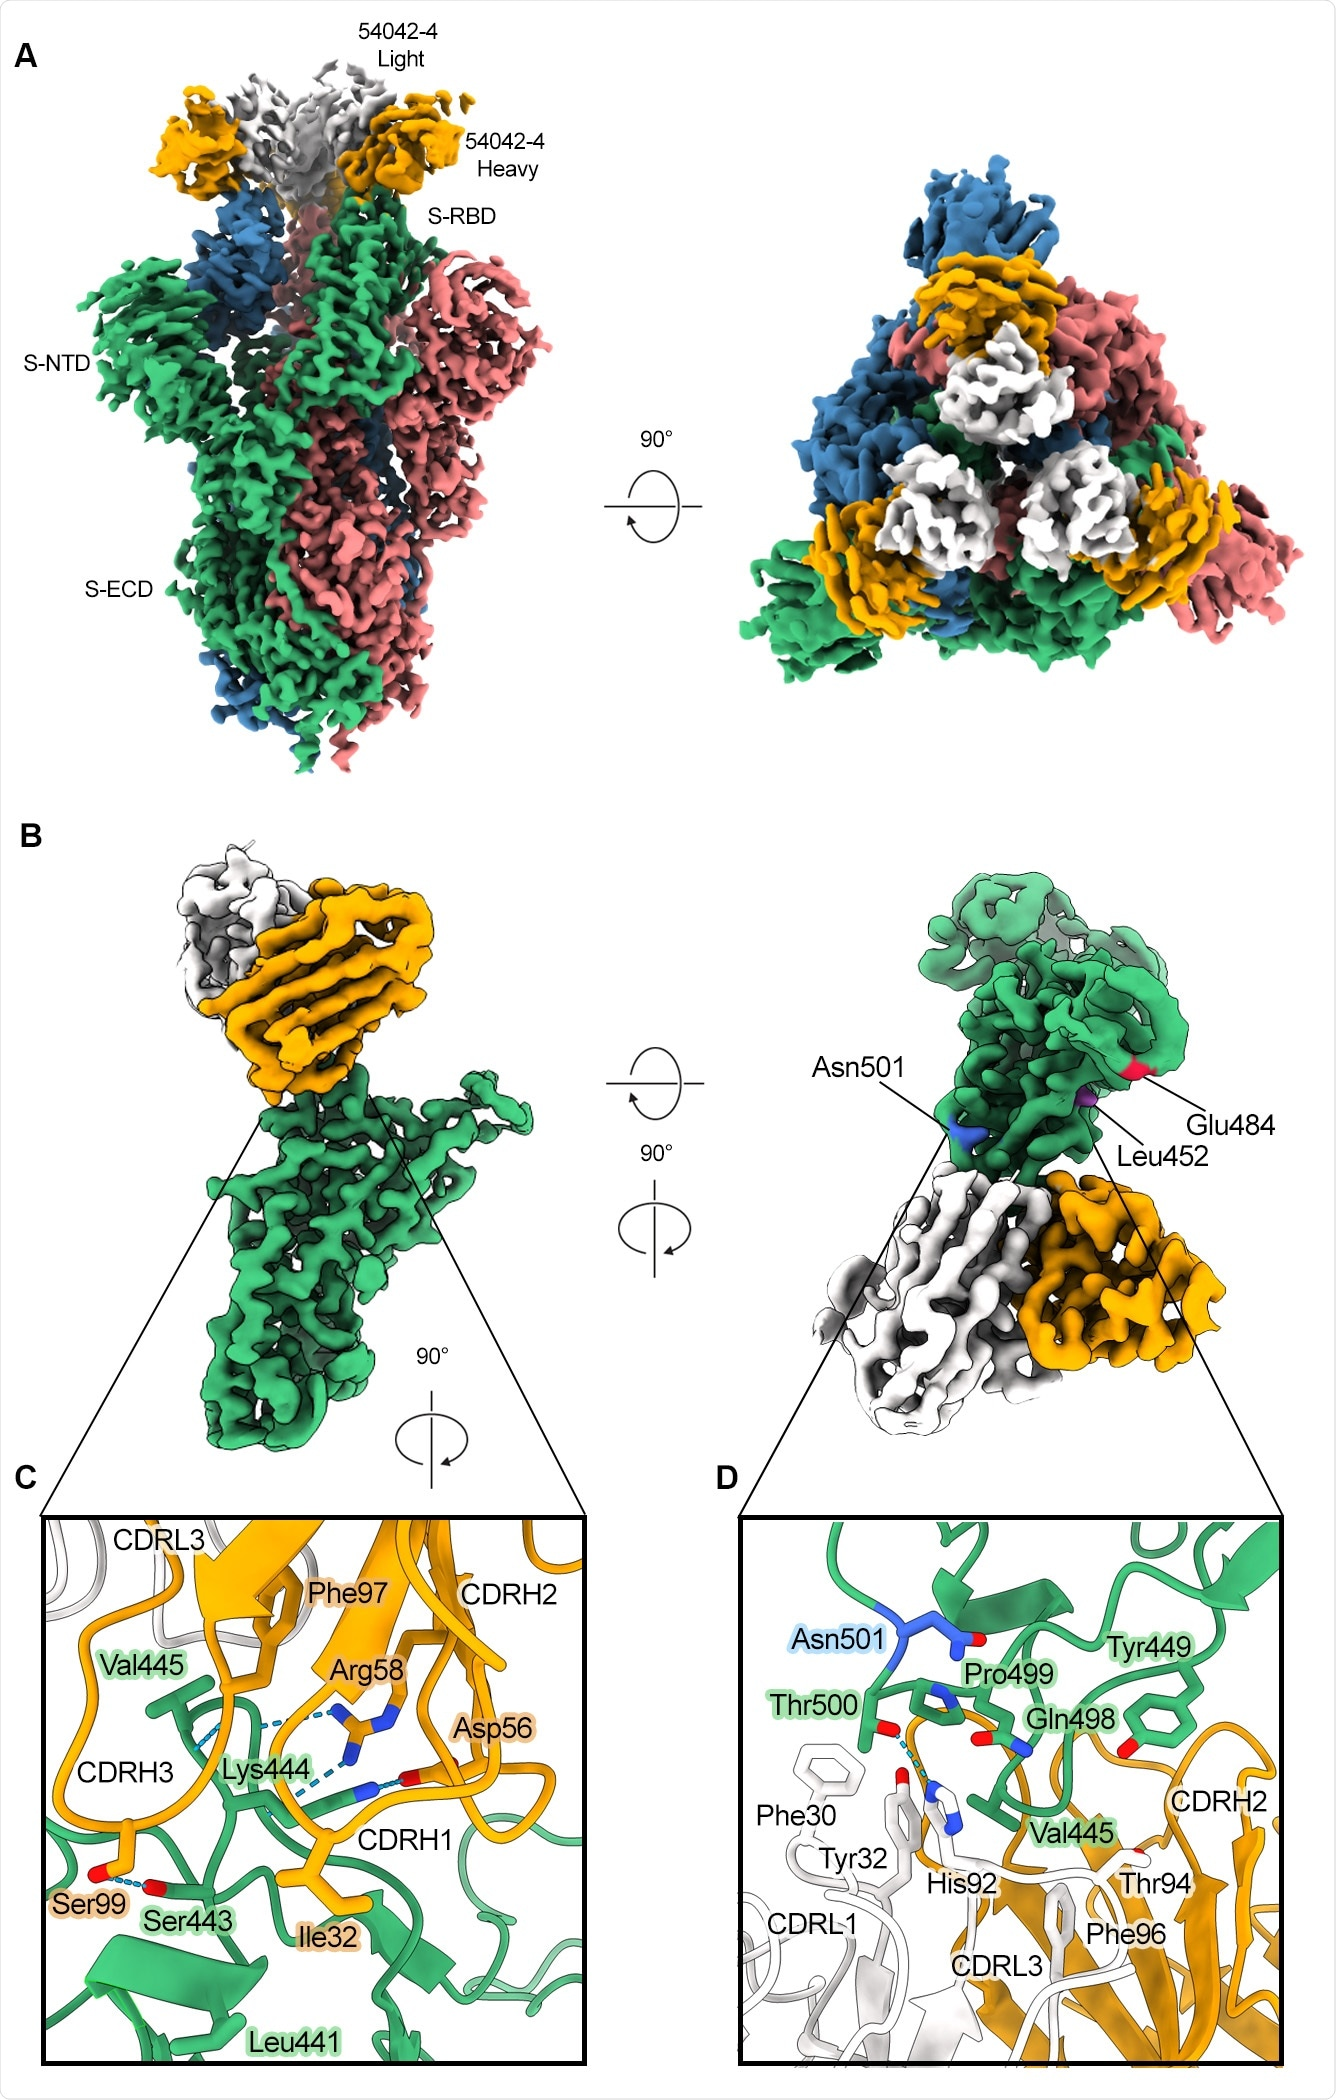 Atomic resolution of 54042-4 binding mode to SARS-CoV-2 S (A) 3D reconstructions of side and top views of Fab 42-4 bound to SARS-CoV-2 spike. (B) Focused refinement maps showing the 54042-4 epitope at the apex of the RBM in the down position (left). Top-down view of the 54042-4 epitope showing heavy and light chain contacts, as well as residues outside of the binding interface that are mutated in circulating VOCs (right).